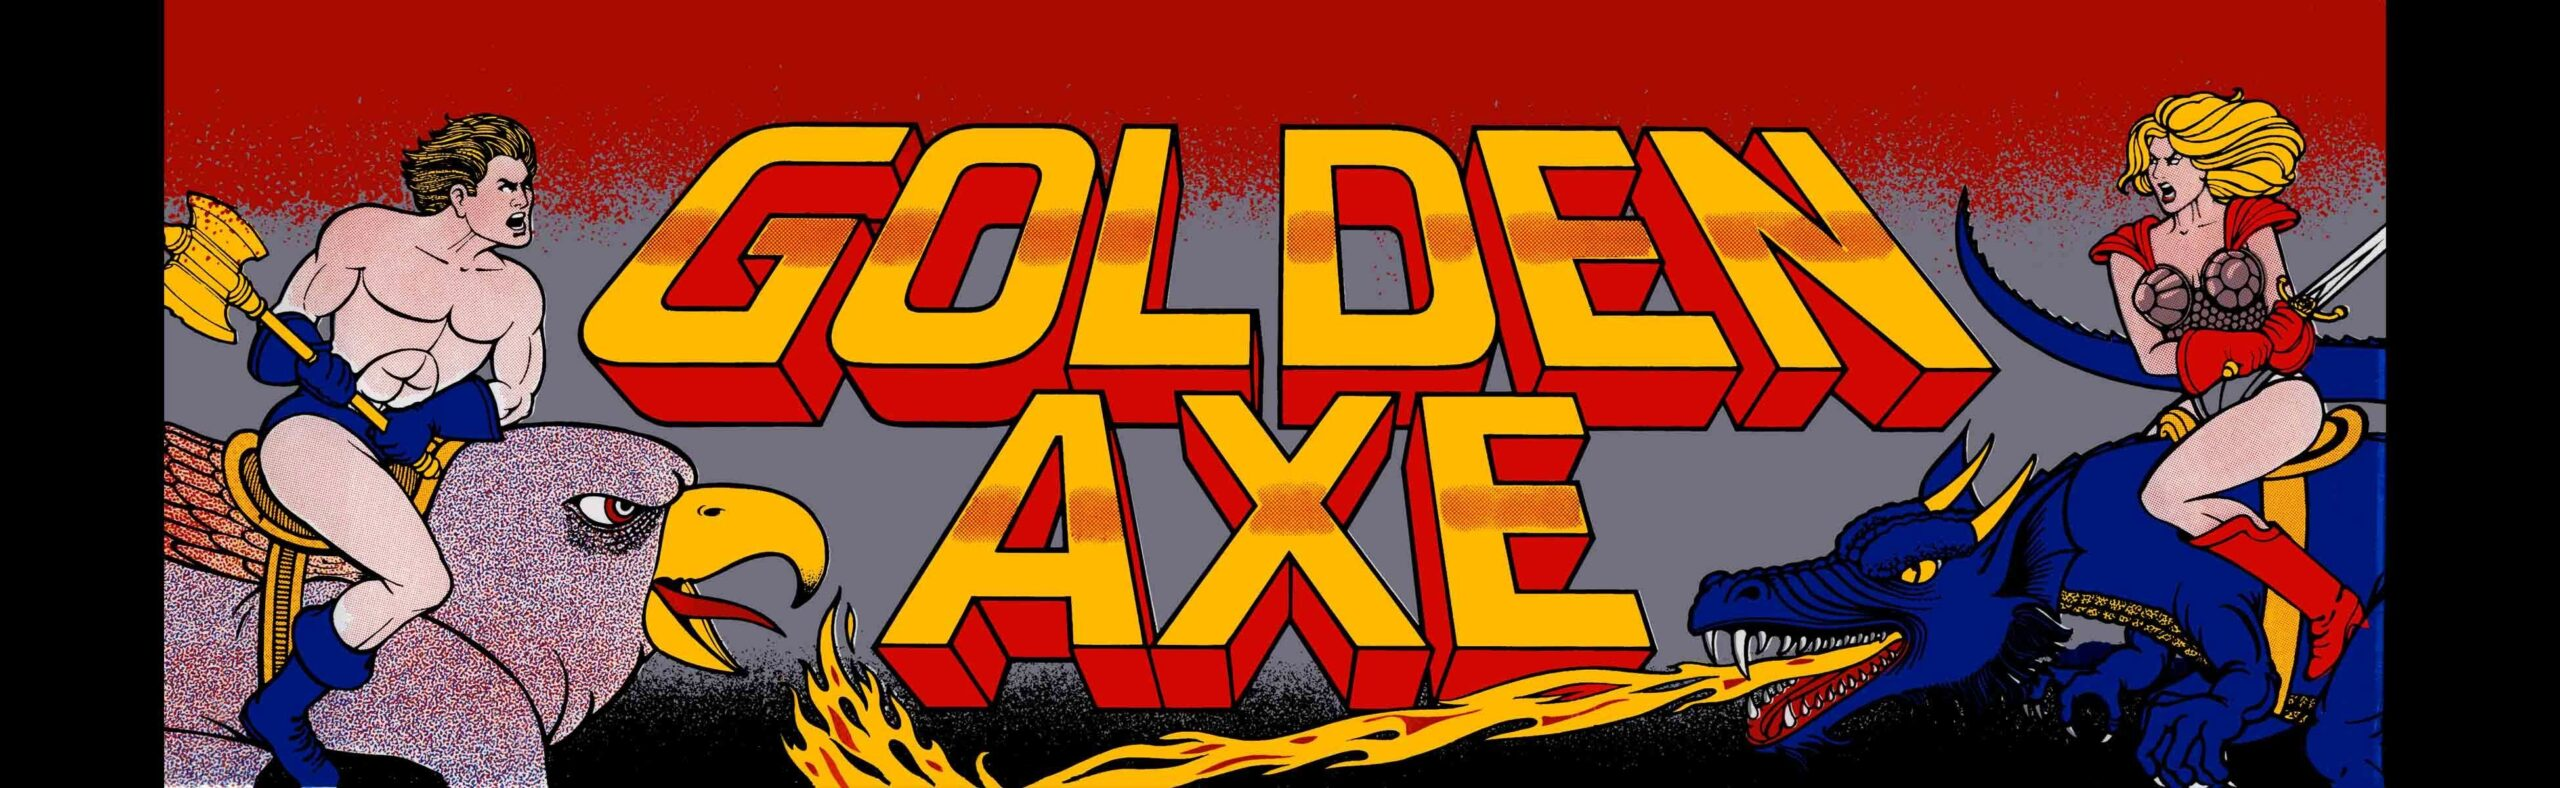 A World of Games: Golden Axe